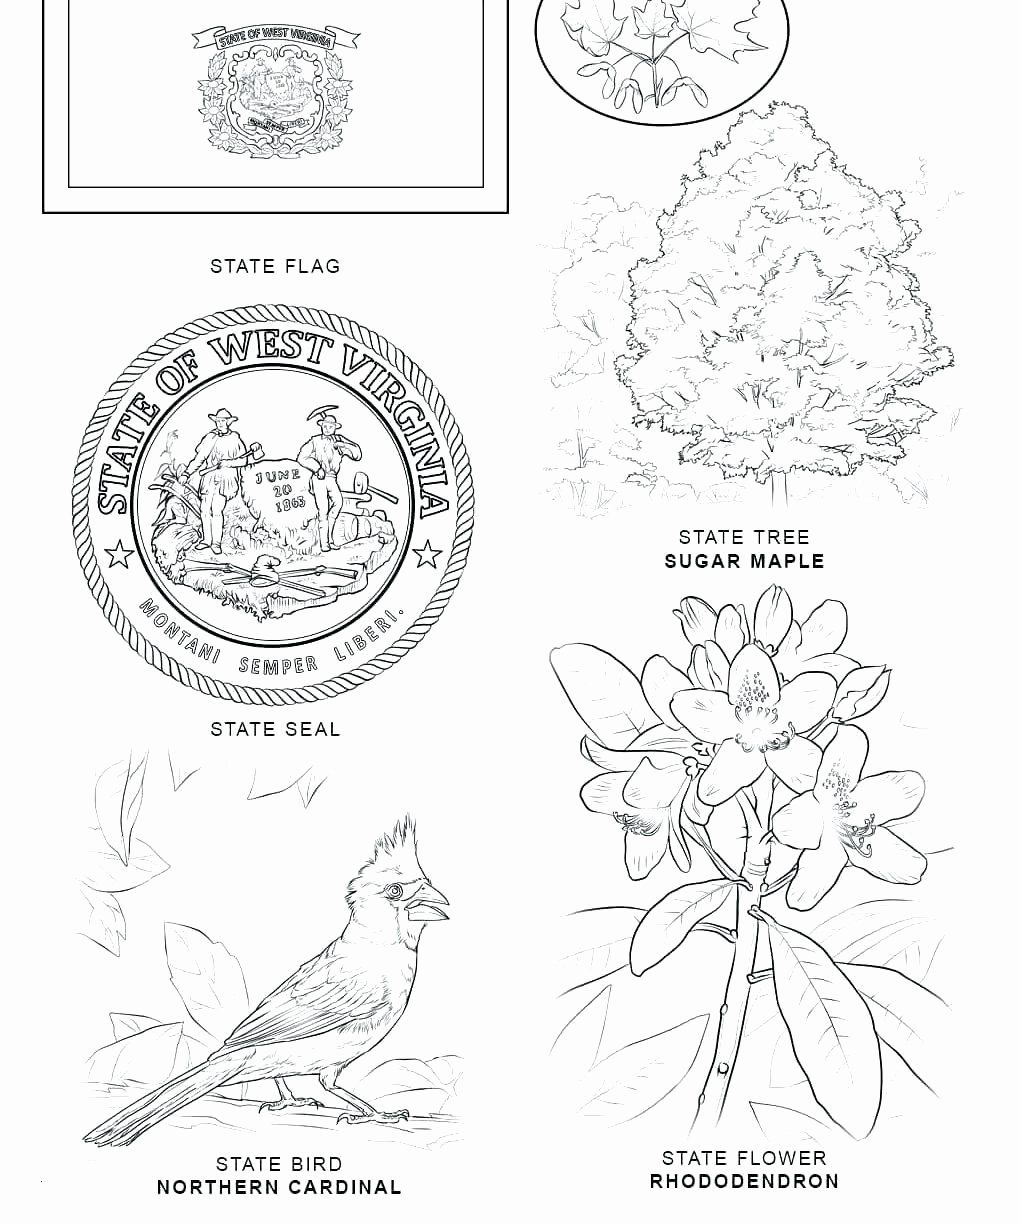 Alabama State Bird Coloring Page Beautiful Idaho State Flag Coloring Pages Proteussheet Bird Coloring Pages Coloring Pages State Birds